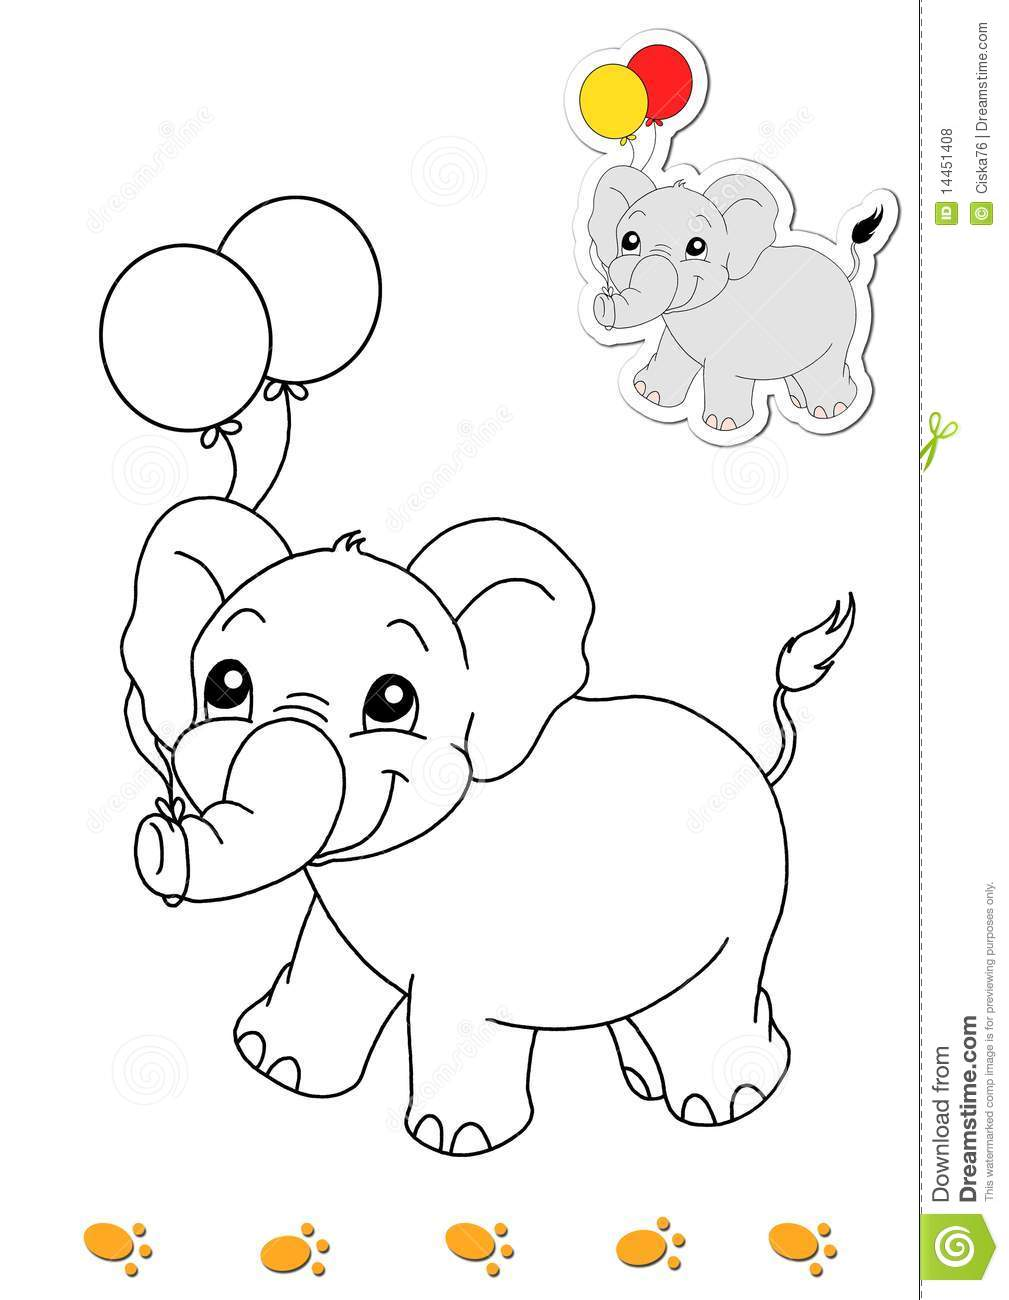 Page With The Elephant To Be Color For Children Digital Illustration